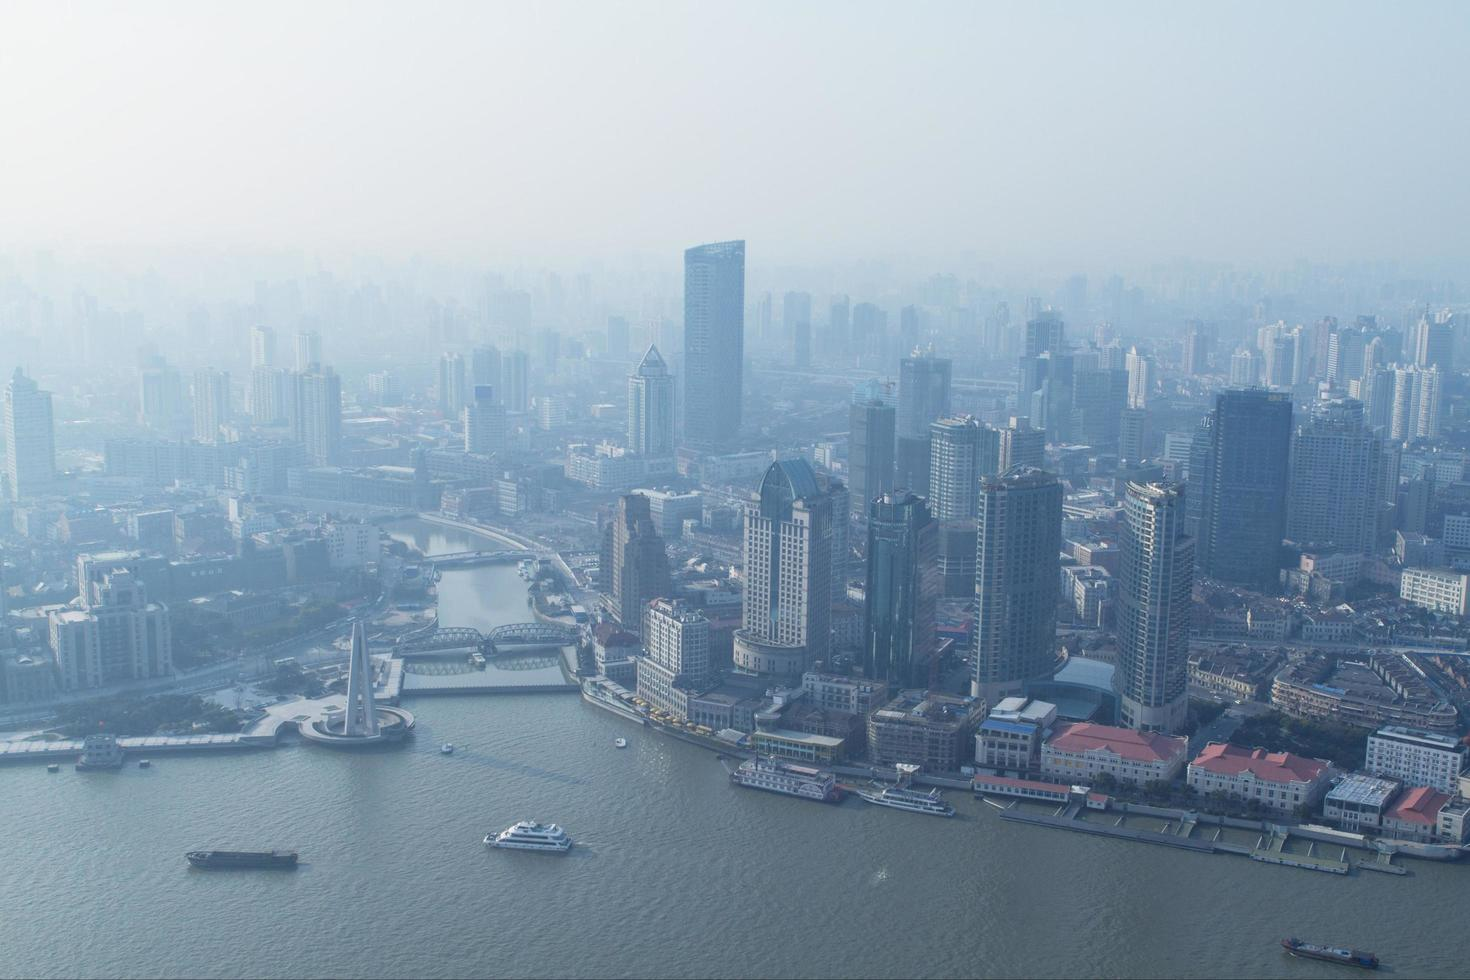 Shanghai, China, 2020 - Aerial view of city buildings photo